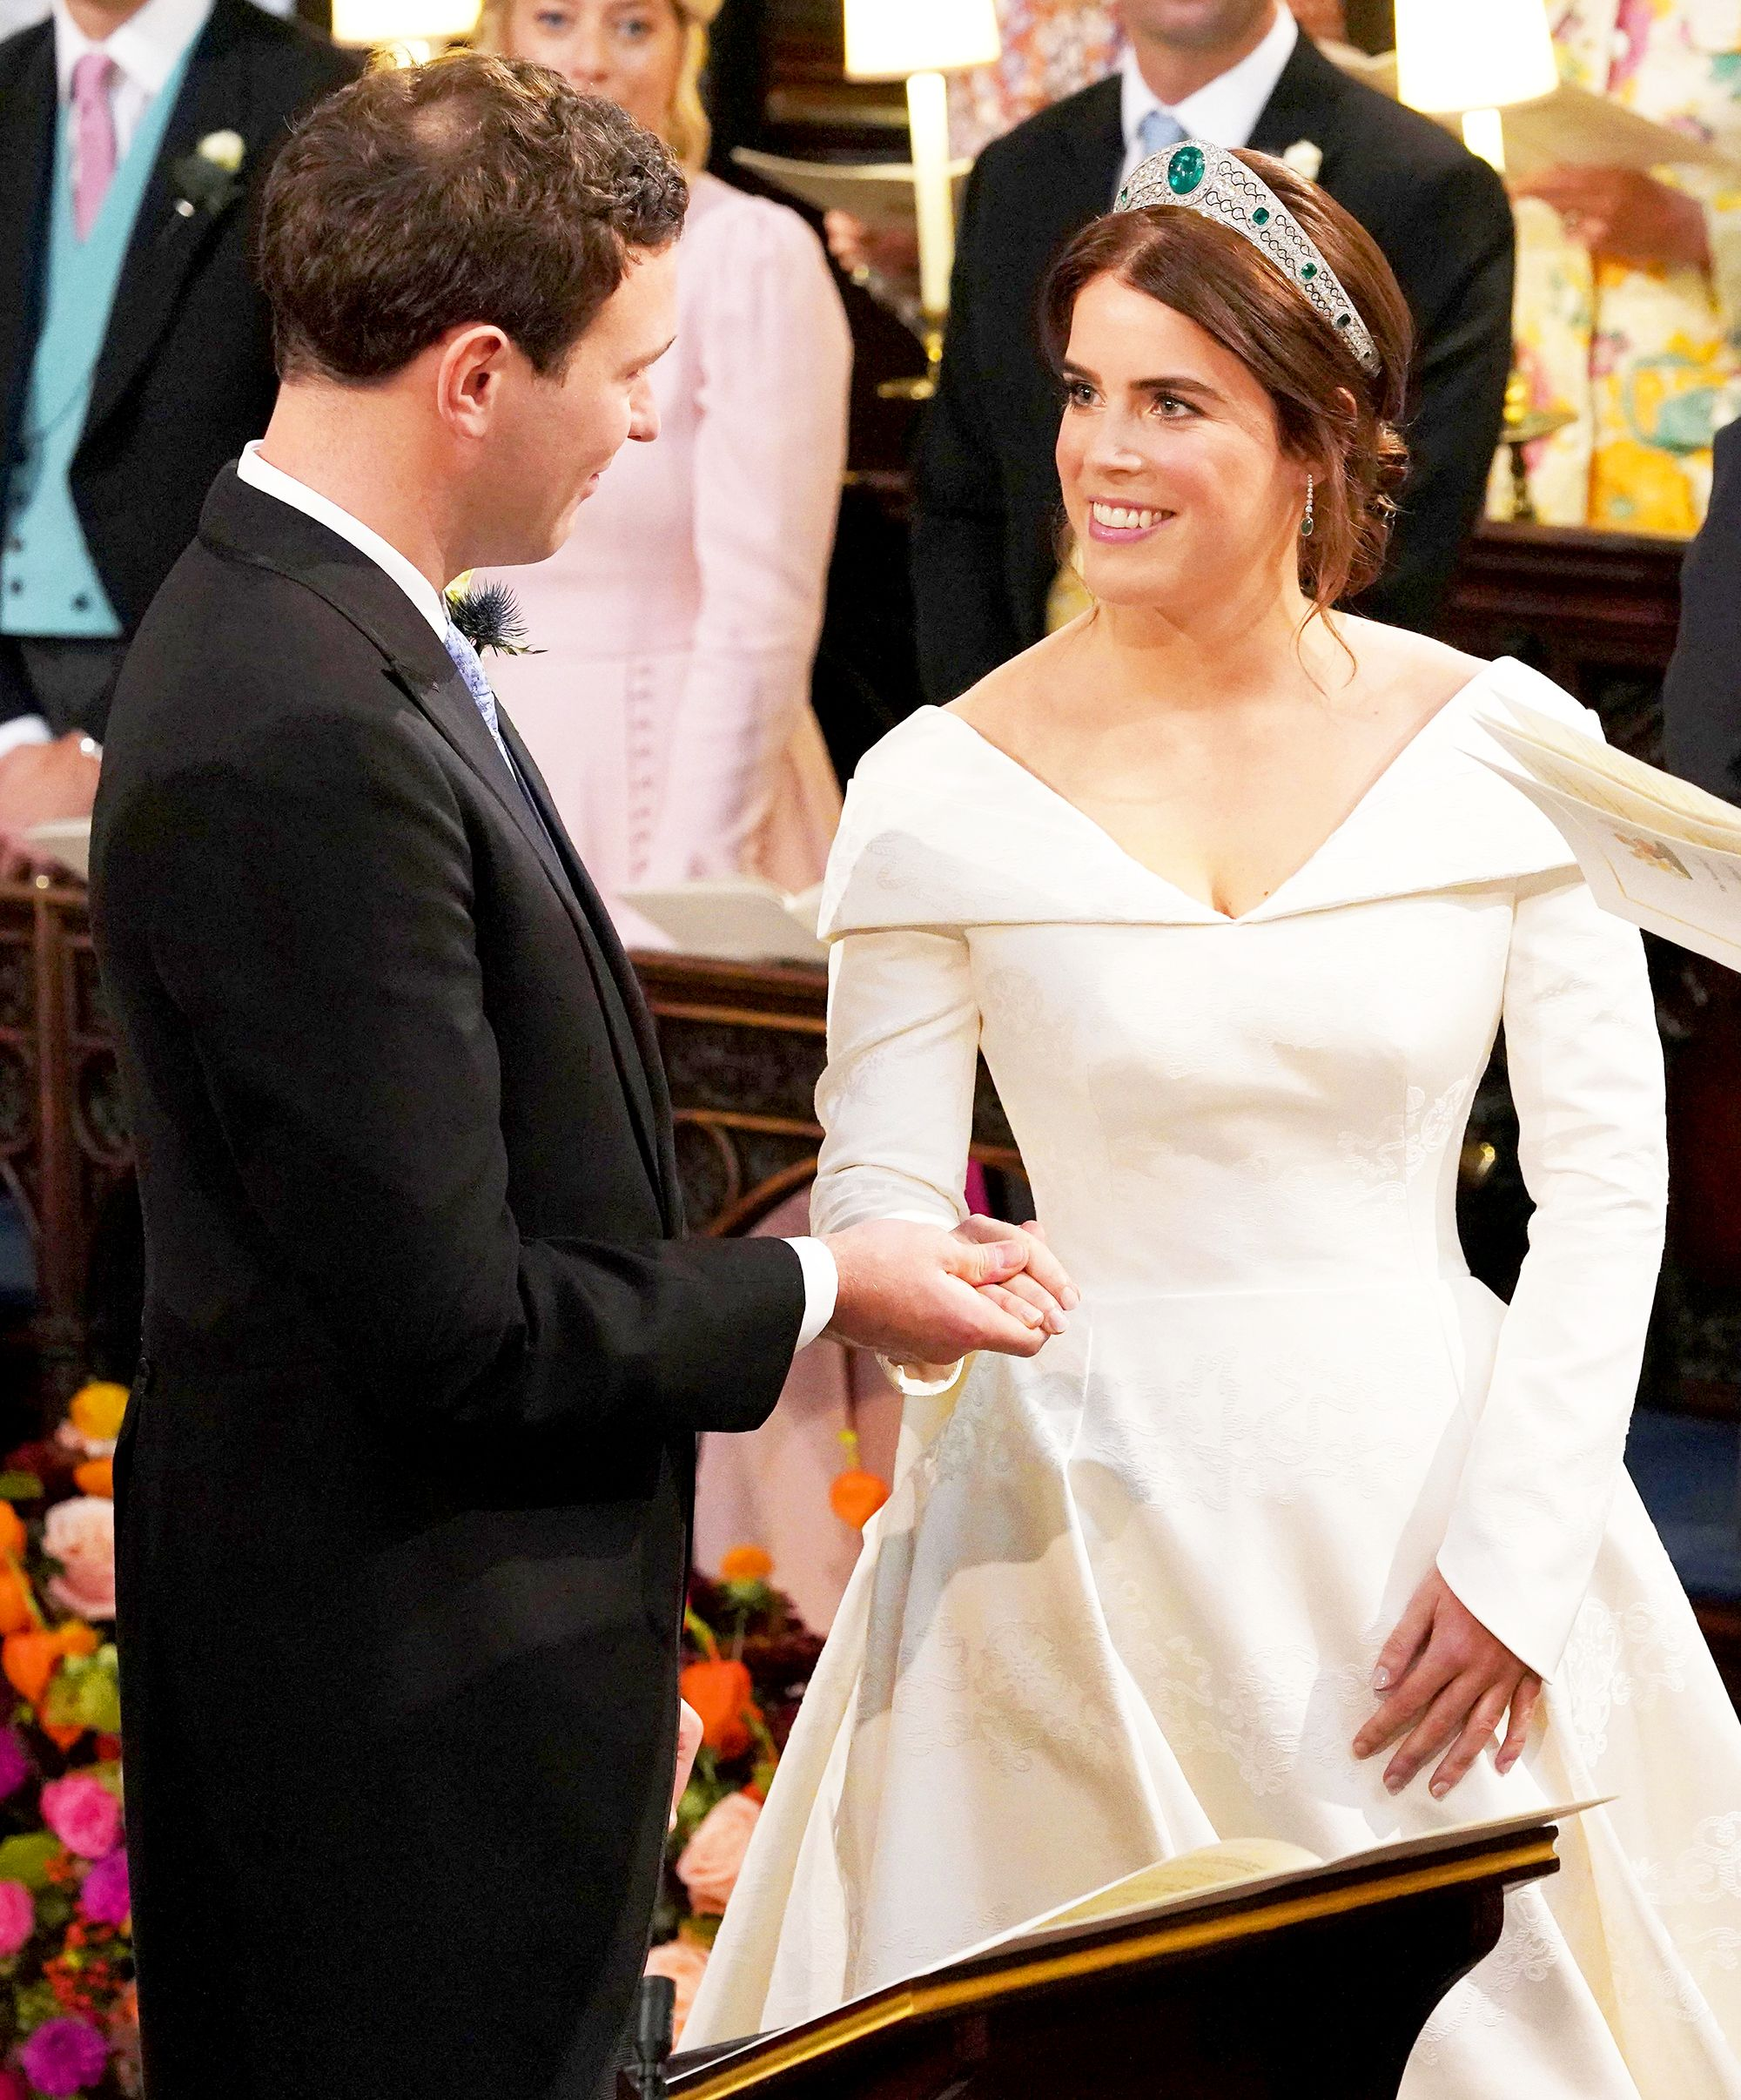 Jack Brooksbank Said the Sweetest Thing as Princess Eugenie Walked Down the Aisle Jack Brooksbank Said the Sweetest Thing as Princess Eugenie Walked Down the Aisle new photo